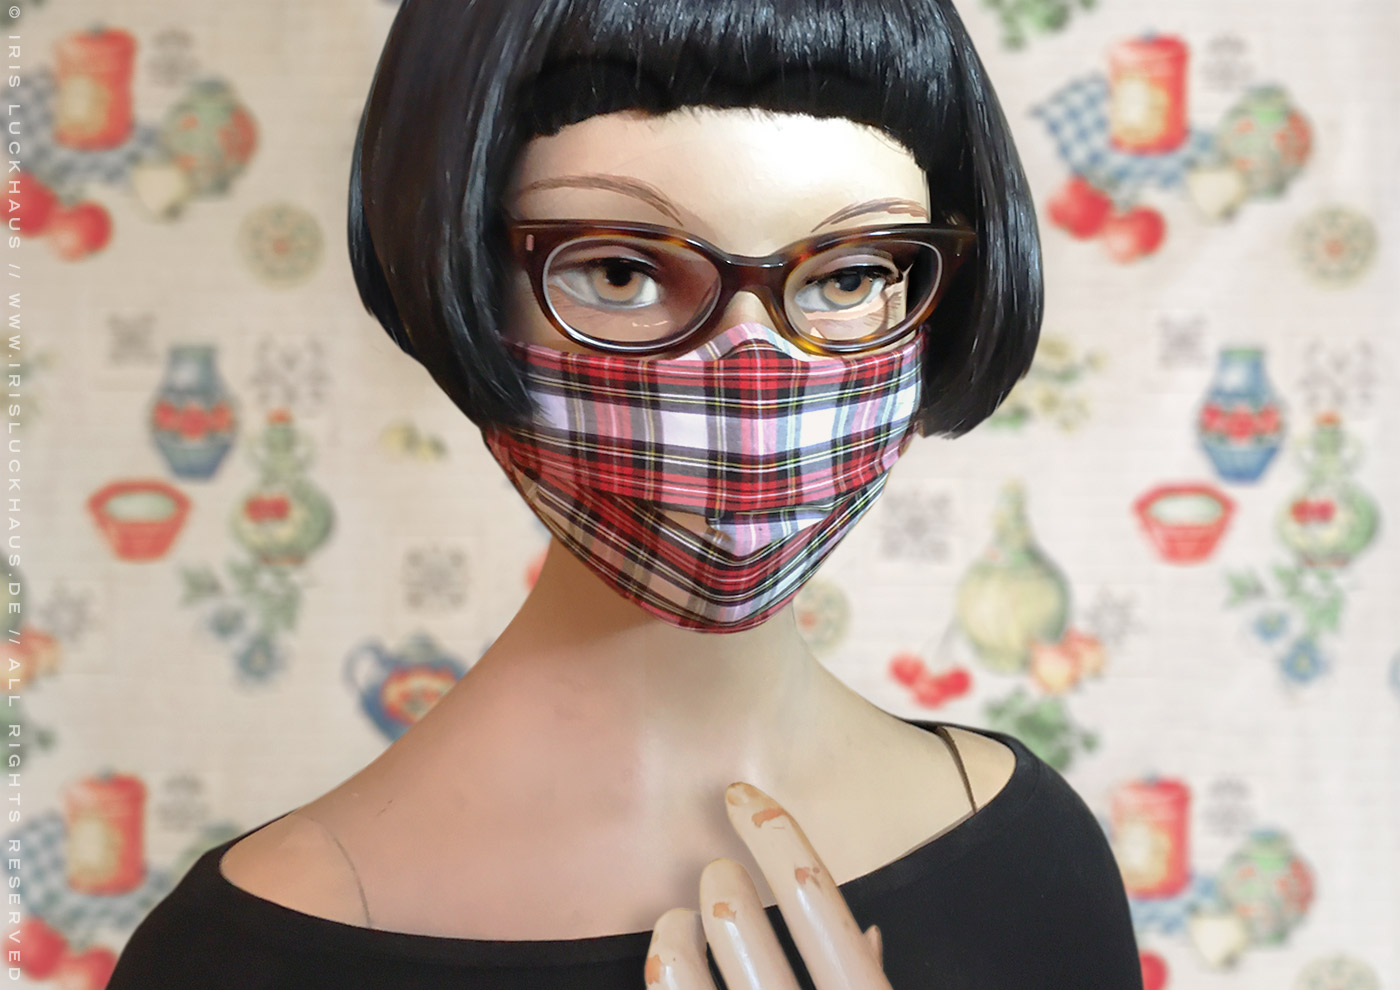 Hybrid cloth mask or fabric face covering as a top mask, outer cover or sleeve, with reverse nose pleat for glasses, filter opening for space, channels with ear loops and head ties for a a gapless fit for glasses by Iris Luckhaus, to make or sew yourself with instructions, pattern and template